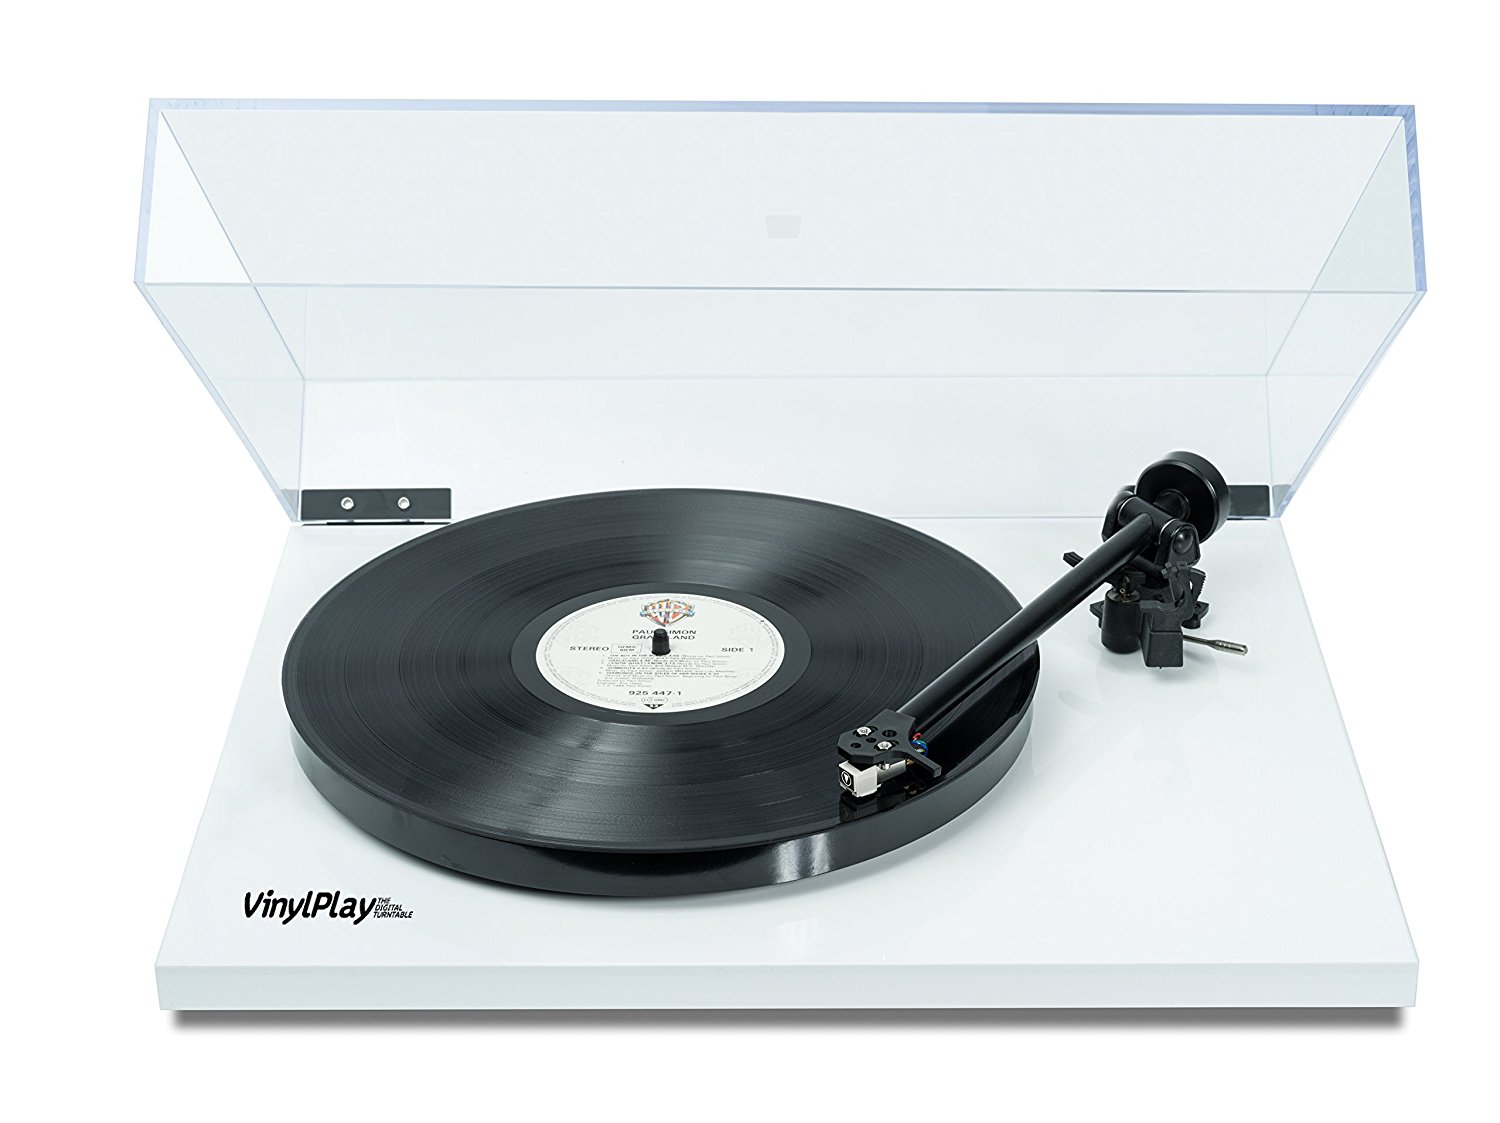 Flexon VinylPlay turntable